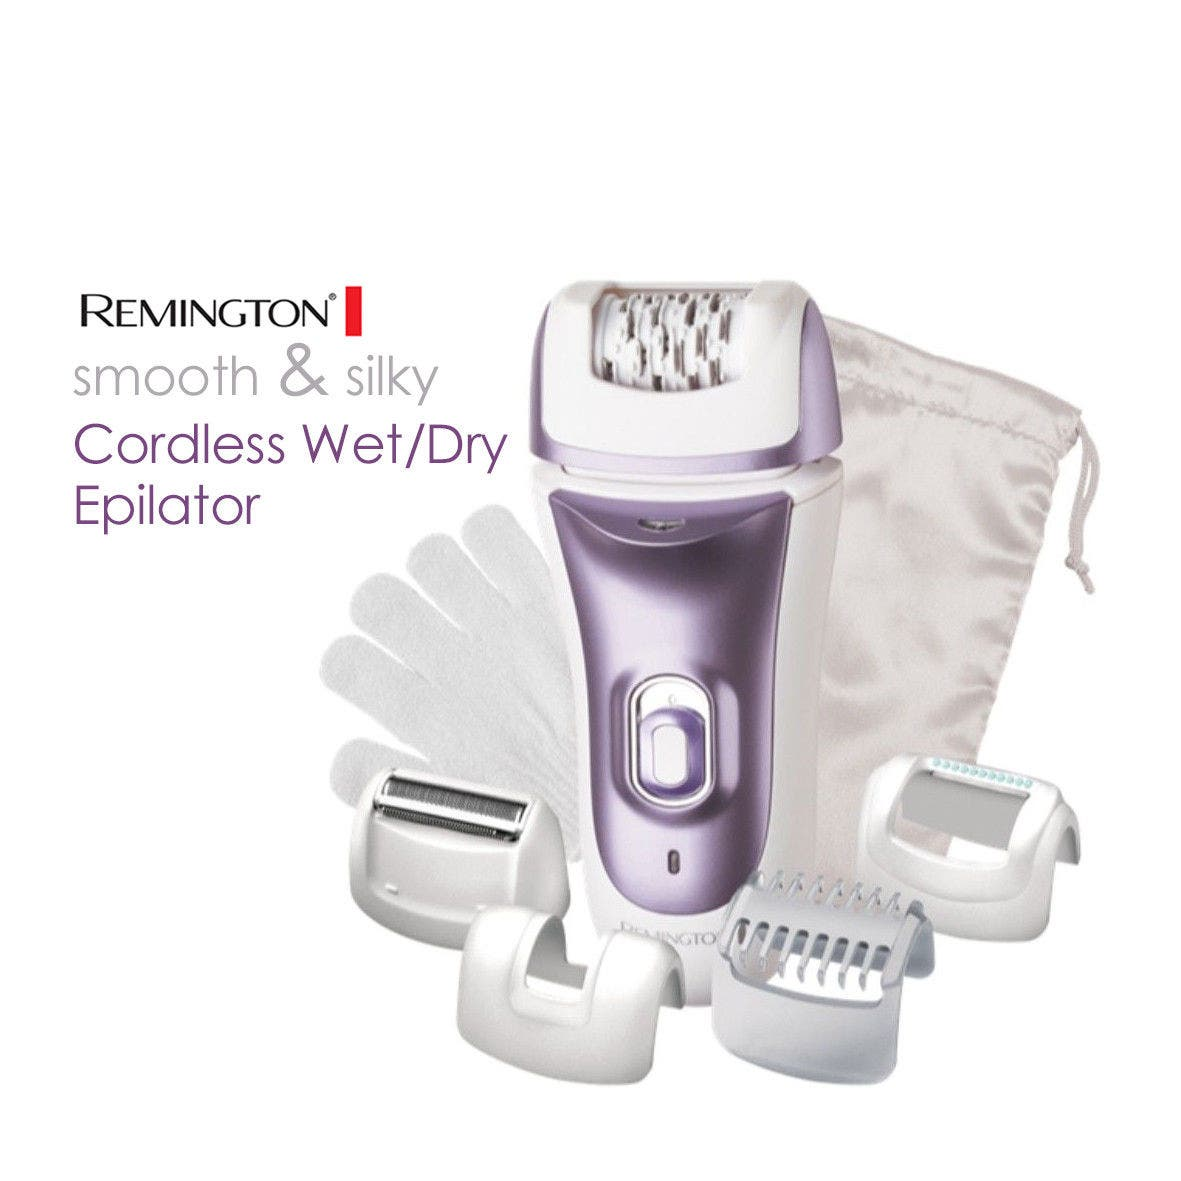 Remington Smooth & Silky - Cordless WET/DRY WOMEN Epilator Kit 2 SPEEDS - EP7031AU